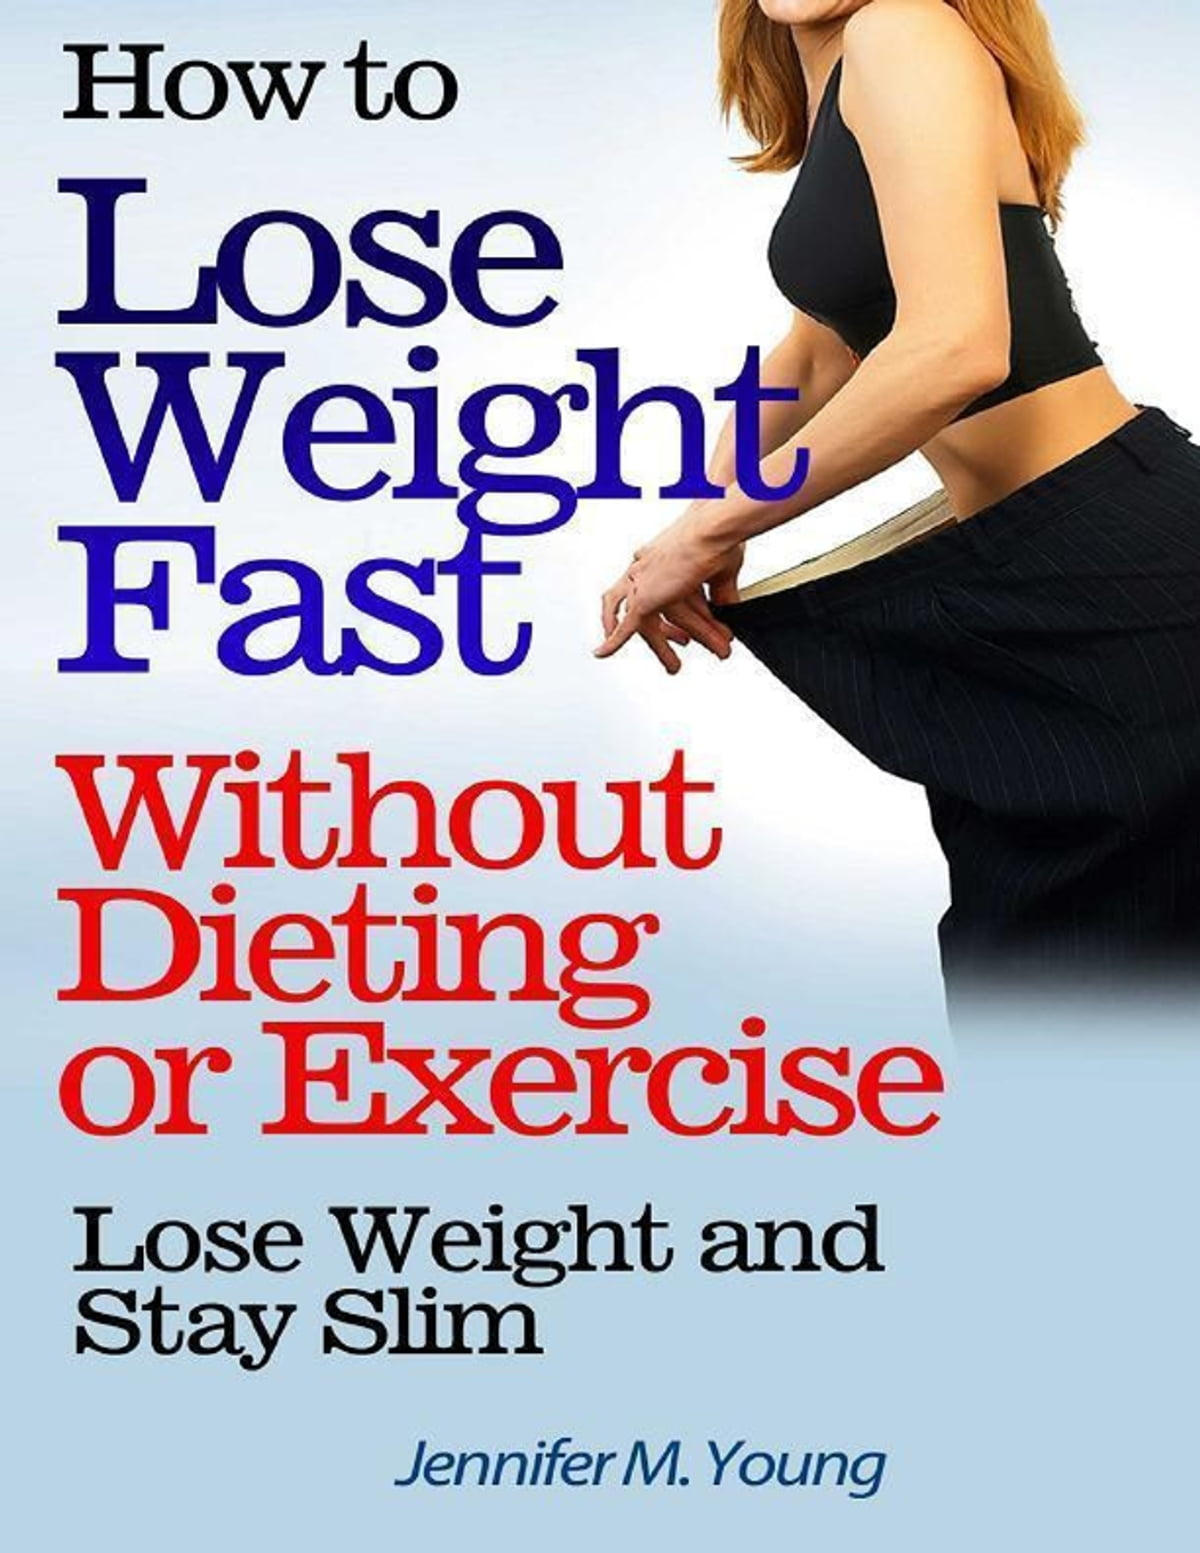 How To Lose Weight Fast Without Dieting Or Exercise Lose Weight And Stay Slim Ebook By Jennifer M Young 9781312036130 Rakuten Kobo United States